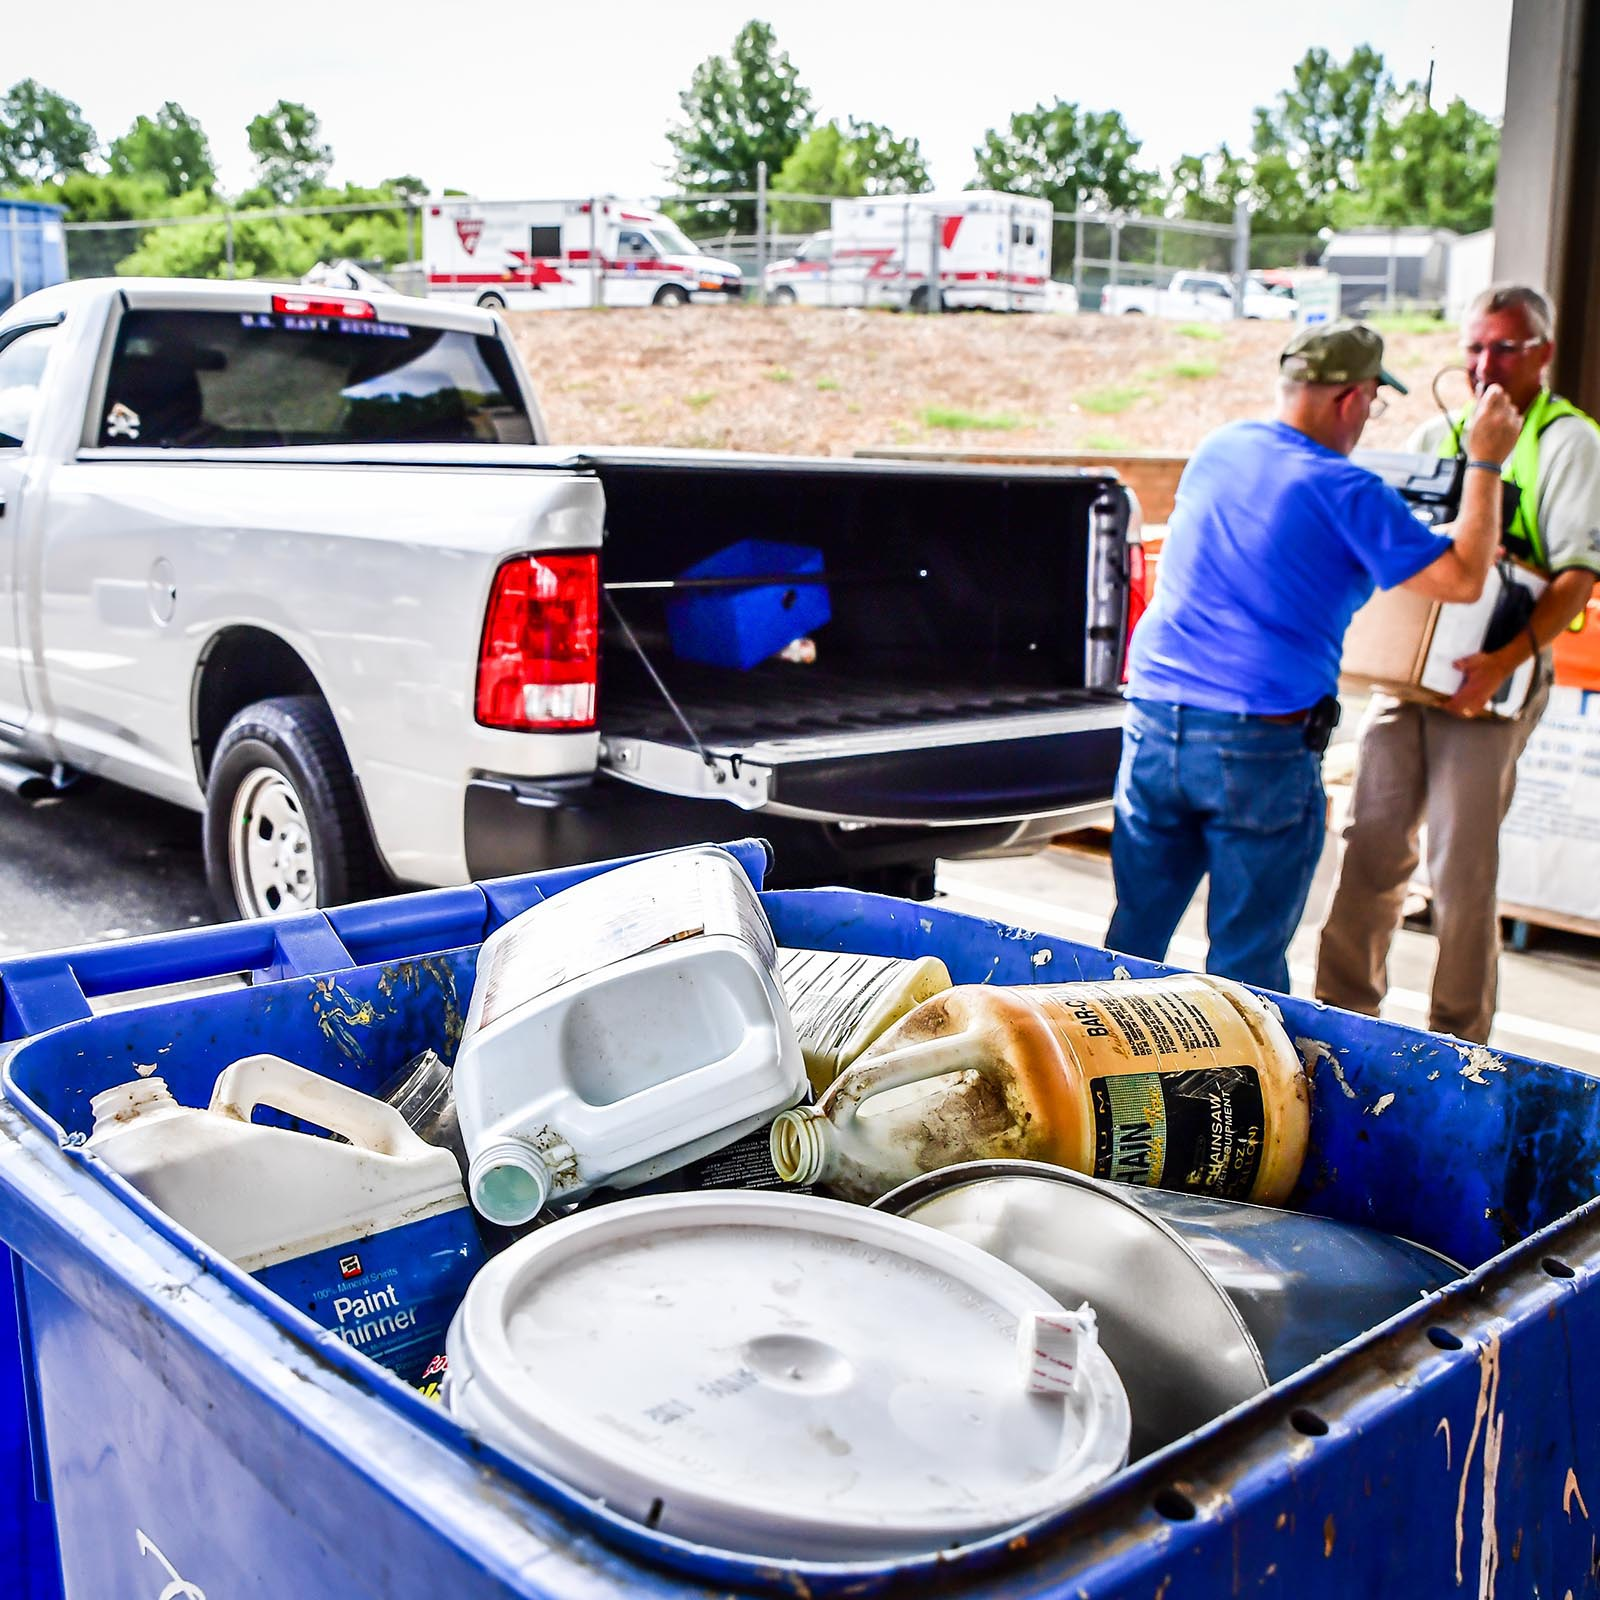 Residents bring materials to HHW collection days